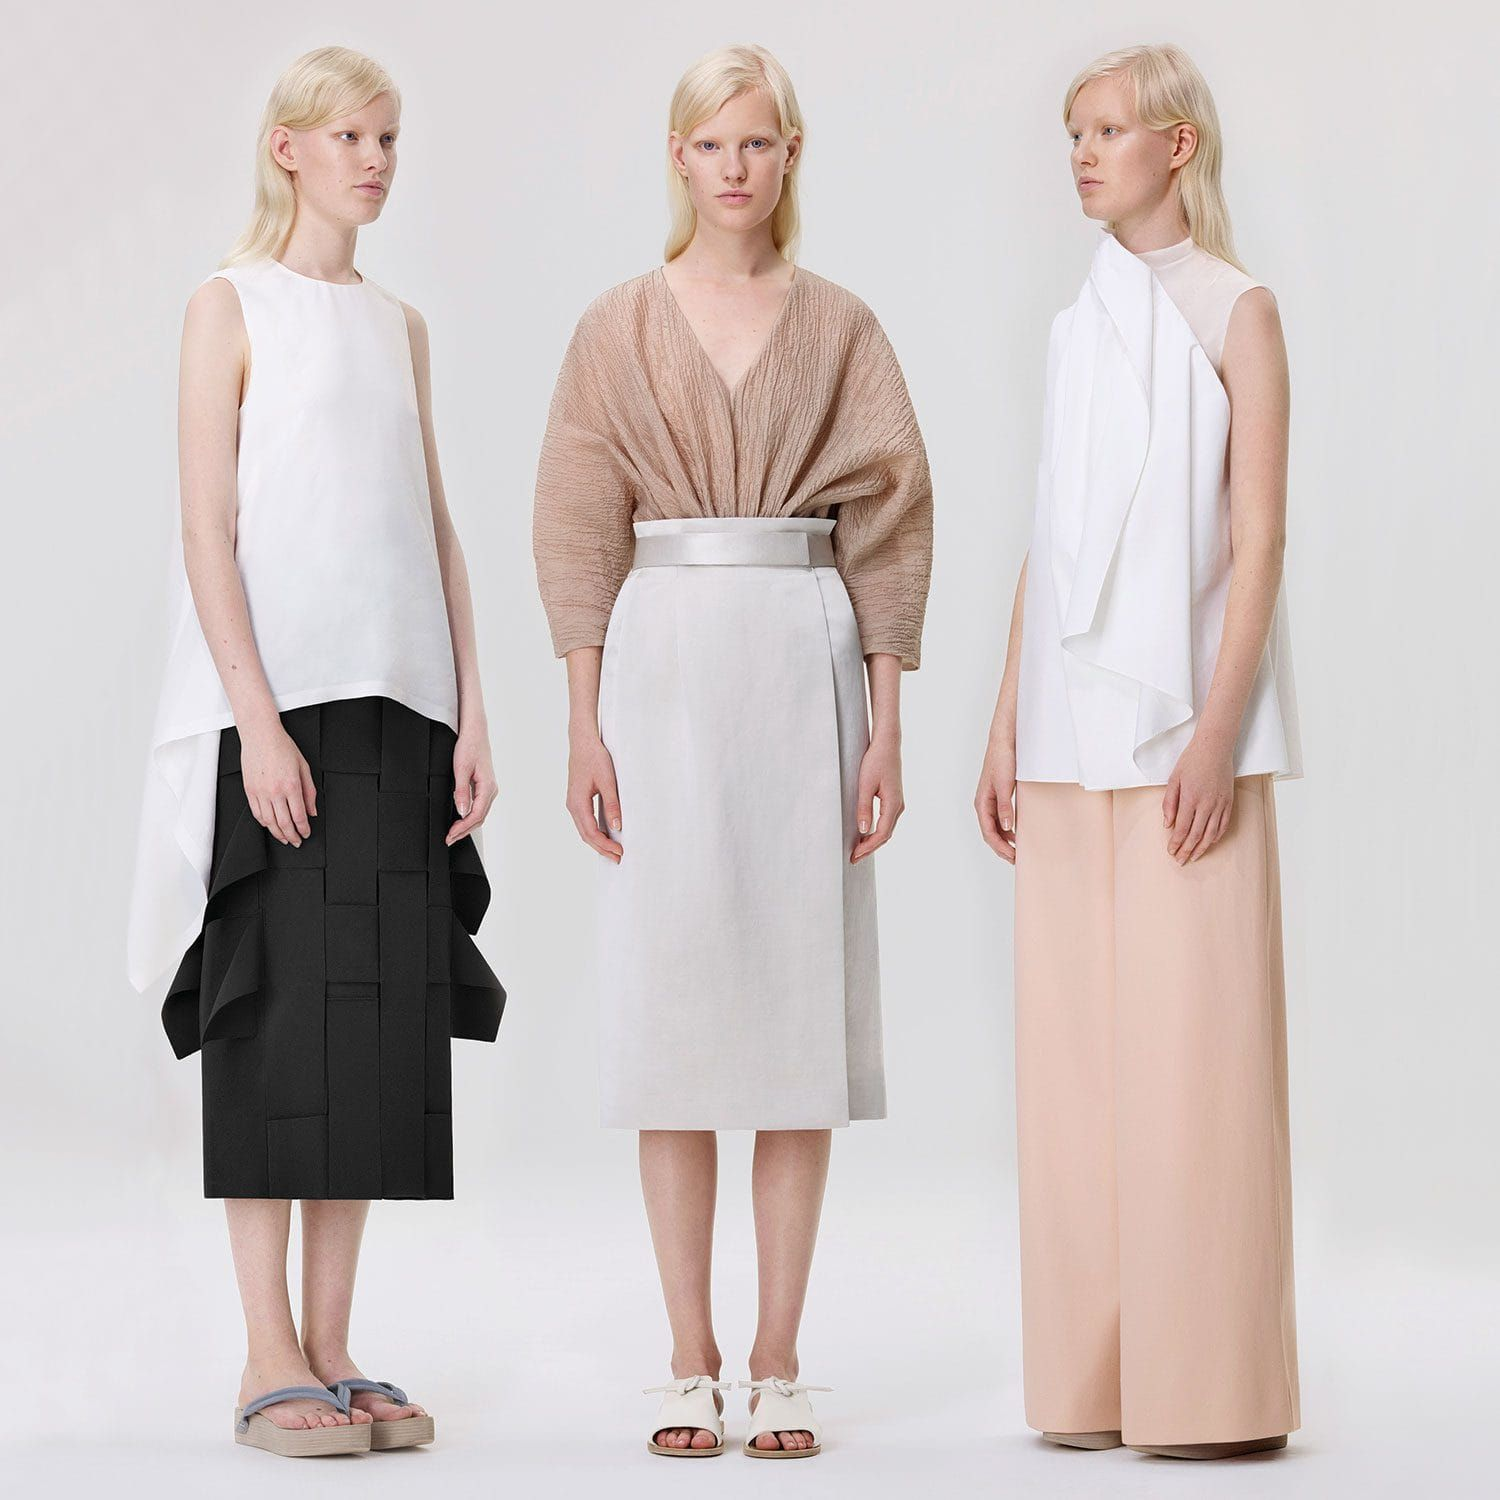 Nordic Chic 8 Scandi Brands You Need To Know Scandanavian Fashion Scandinavian Fashion Women Fashion